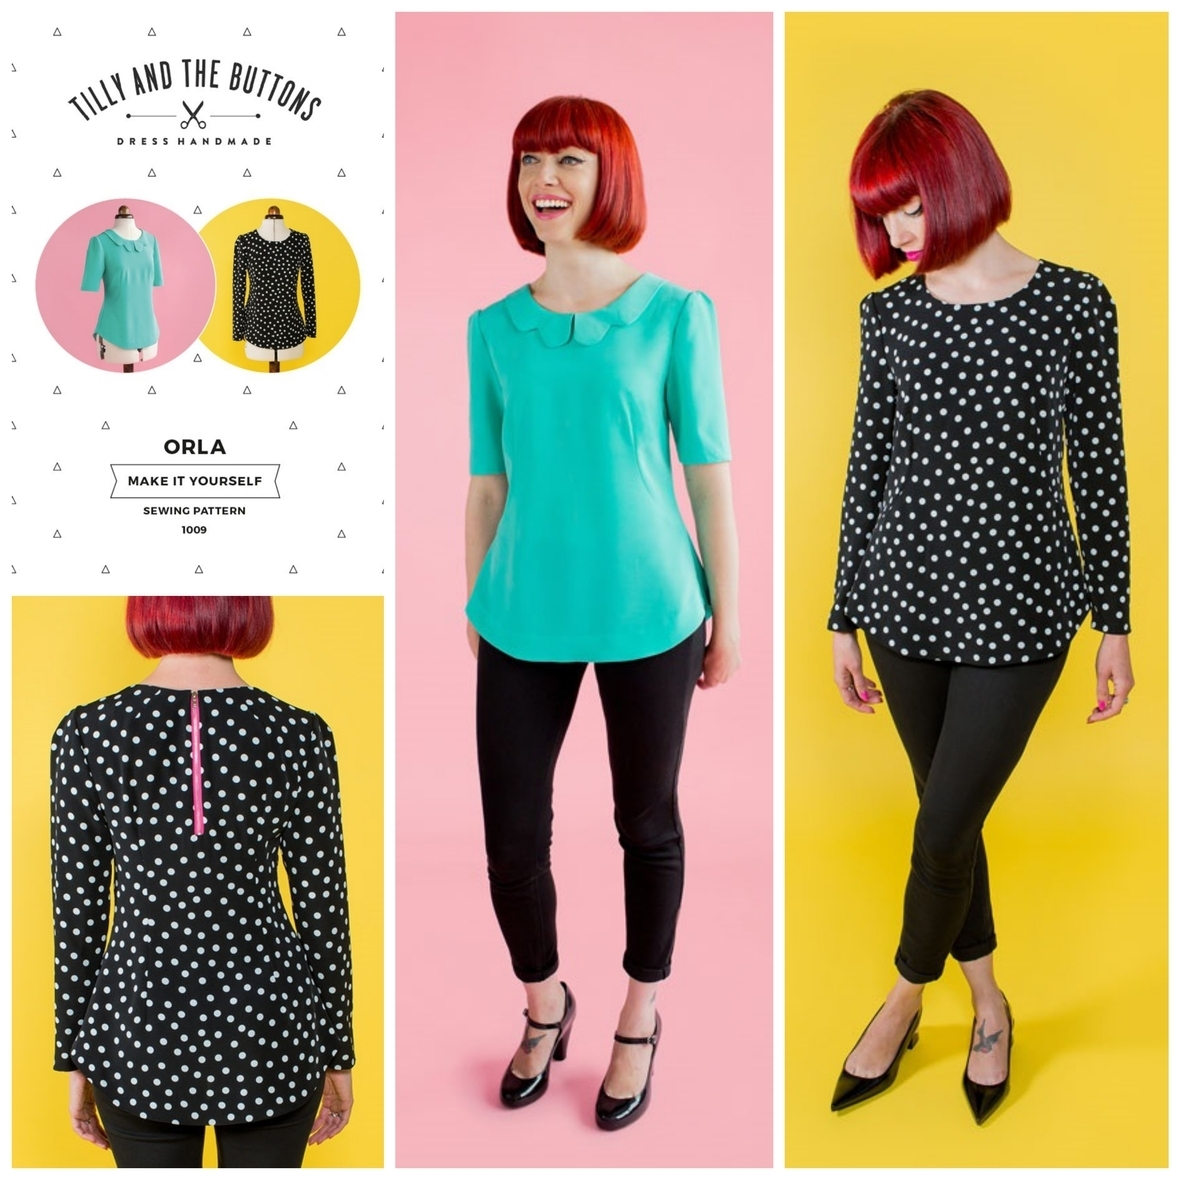 tilly and the buttons  orla sewing pattern